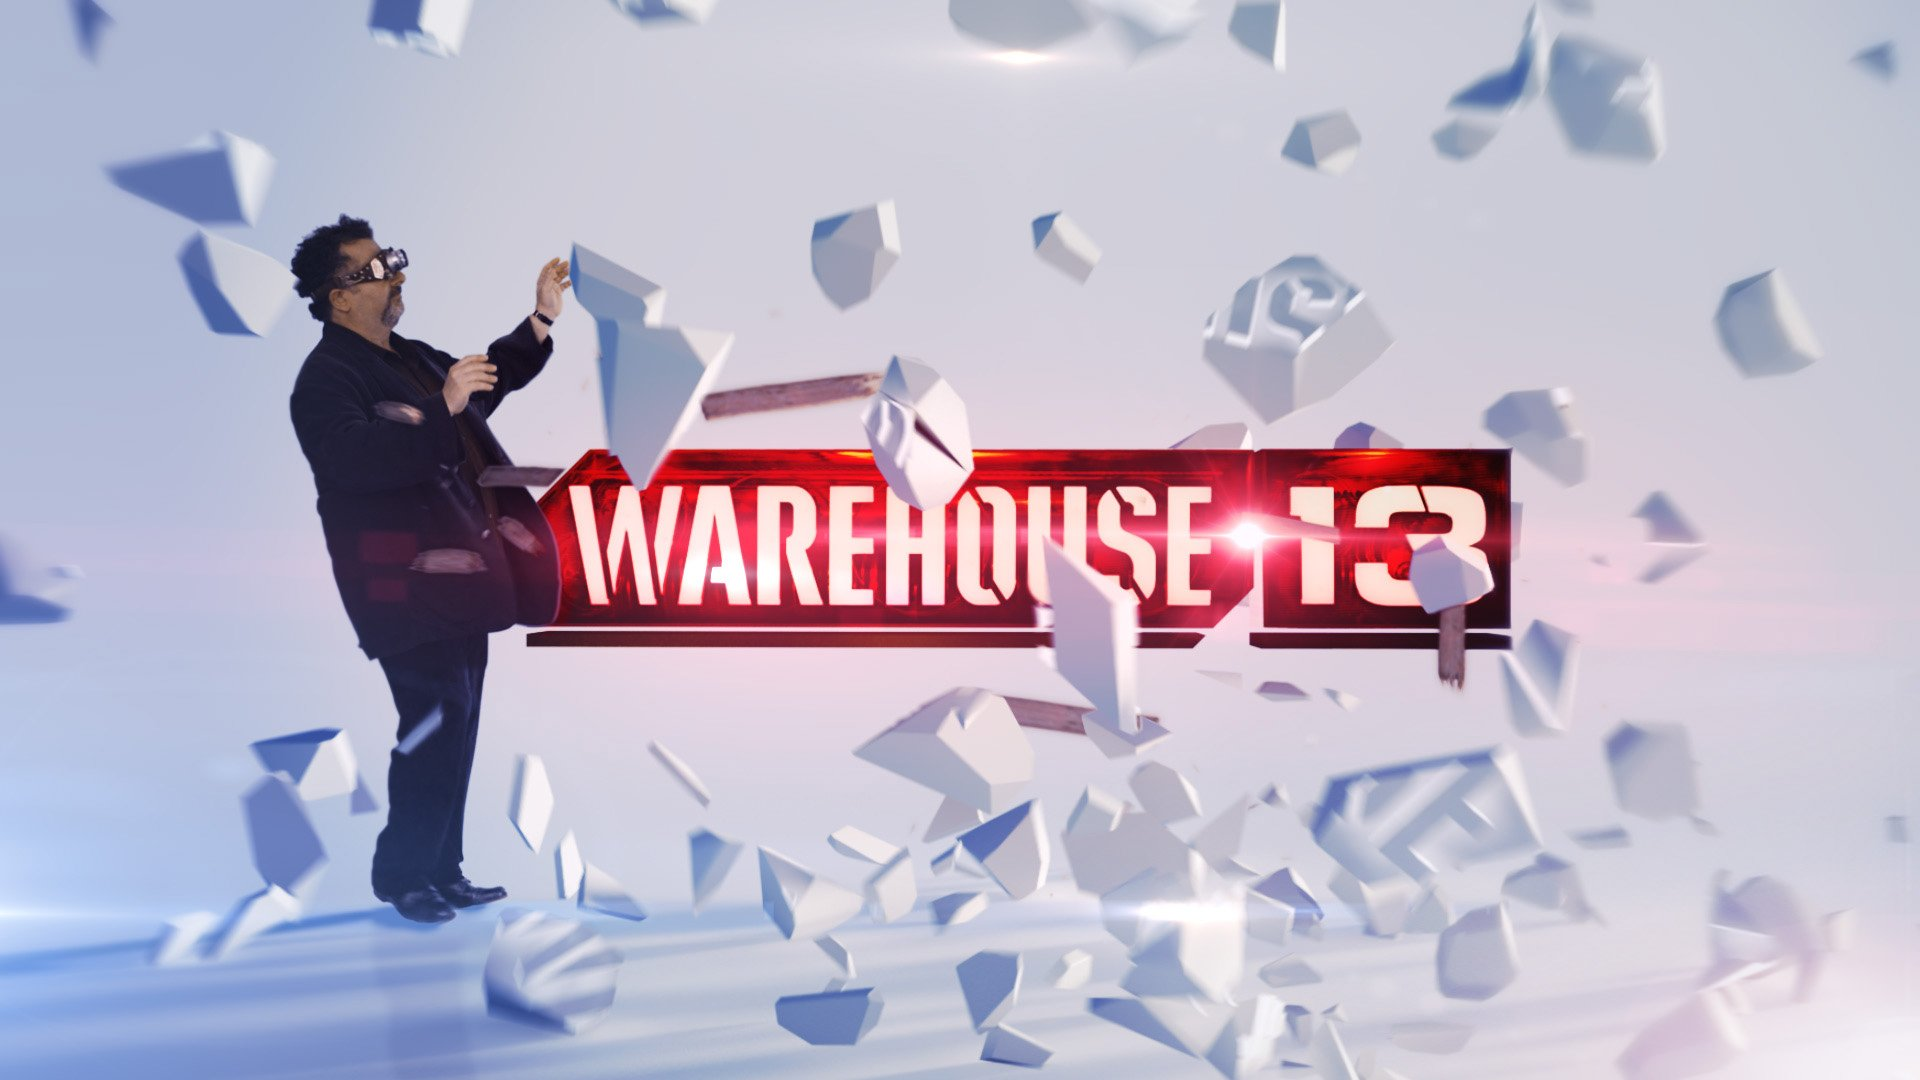 Warehouse 13 drama mystery sci fi fantasy series wallpaper for Serie warehouse